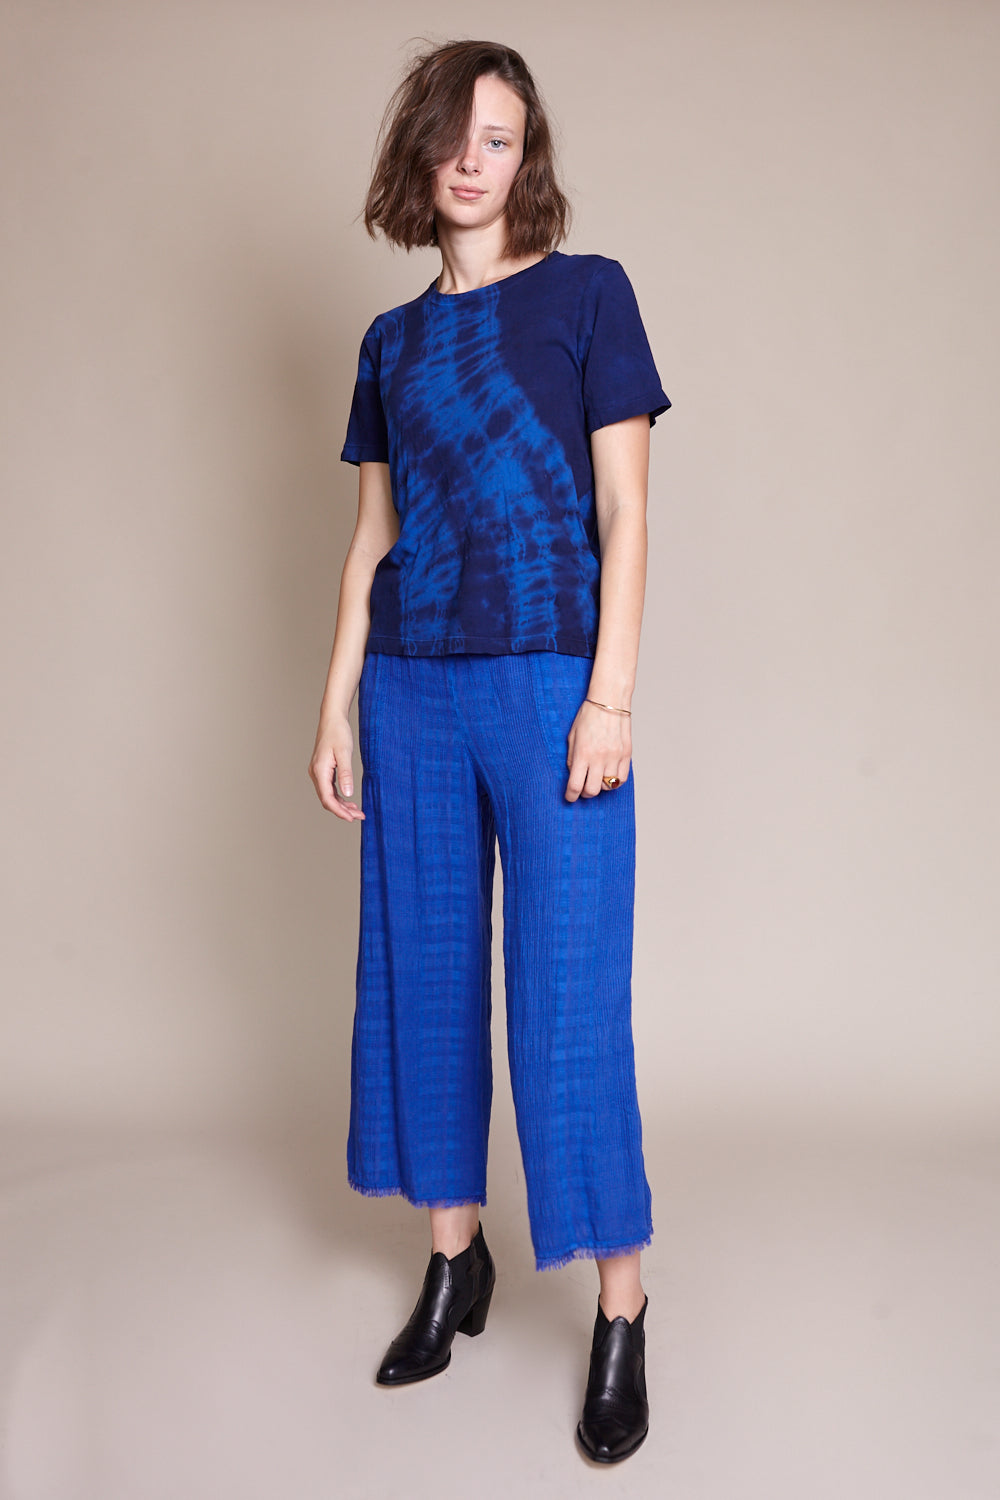 84a8919a Boxy Tie Dye Tee in Cobalt ...